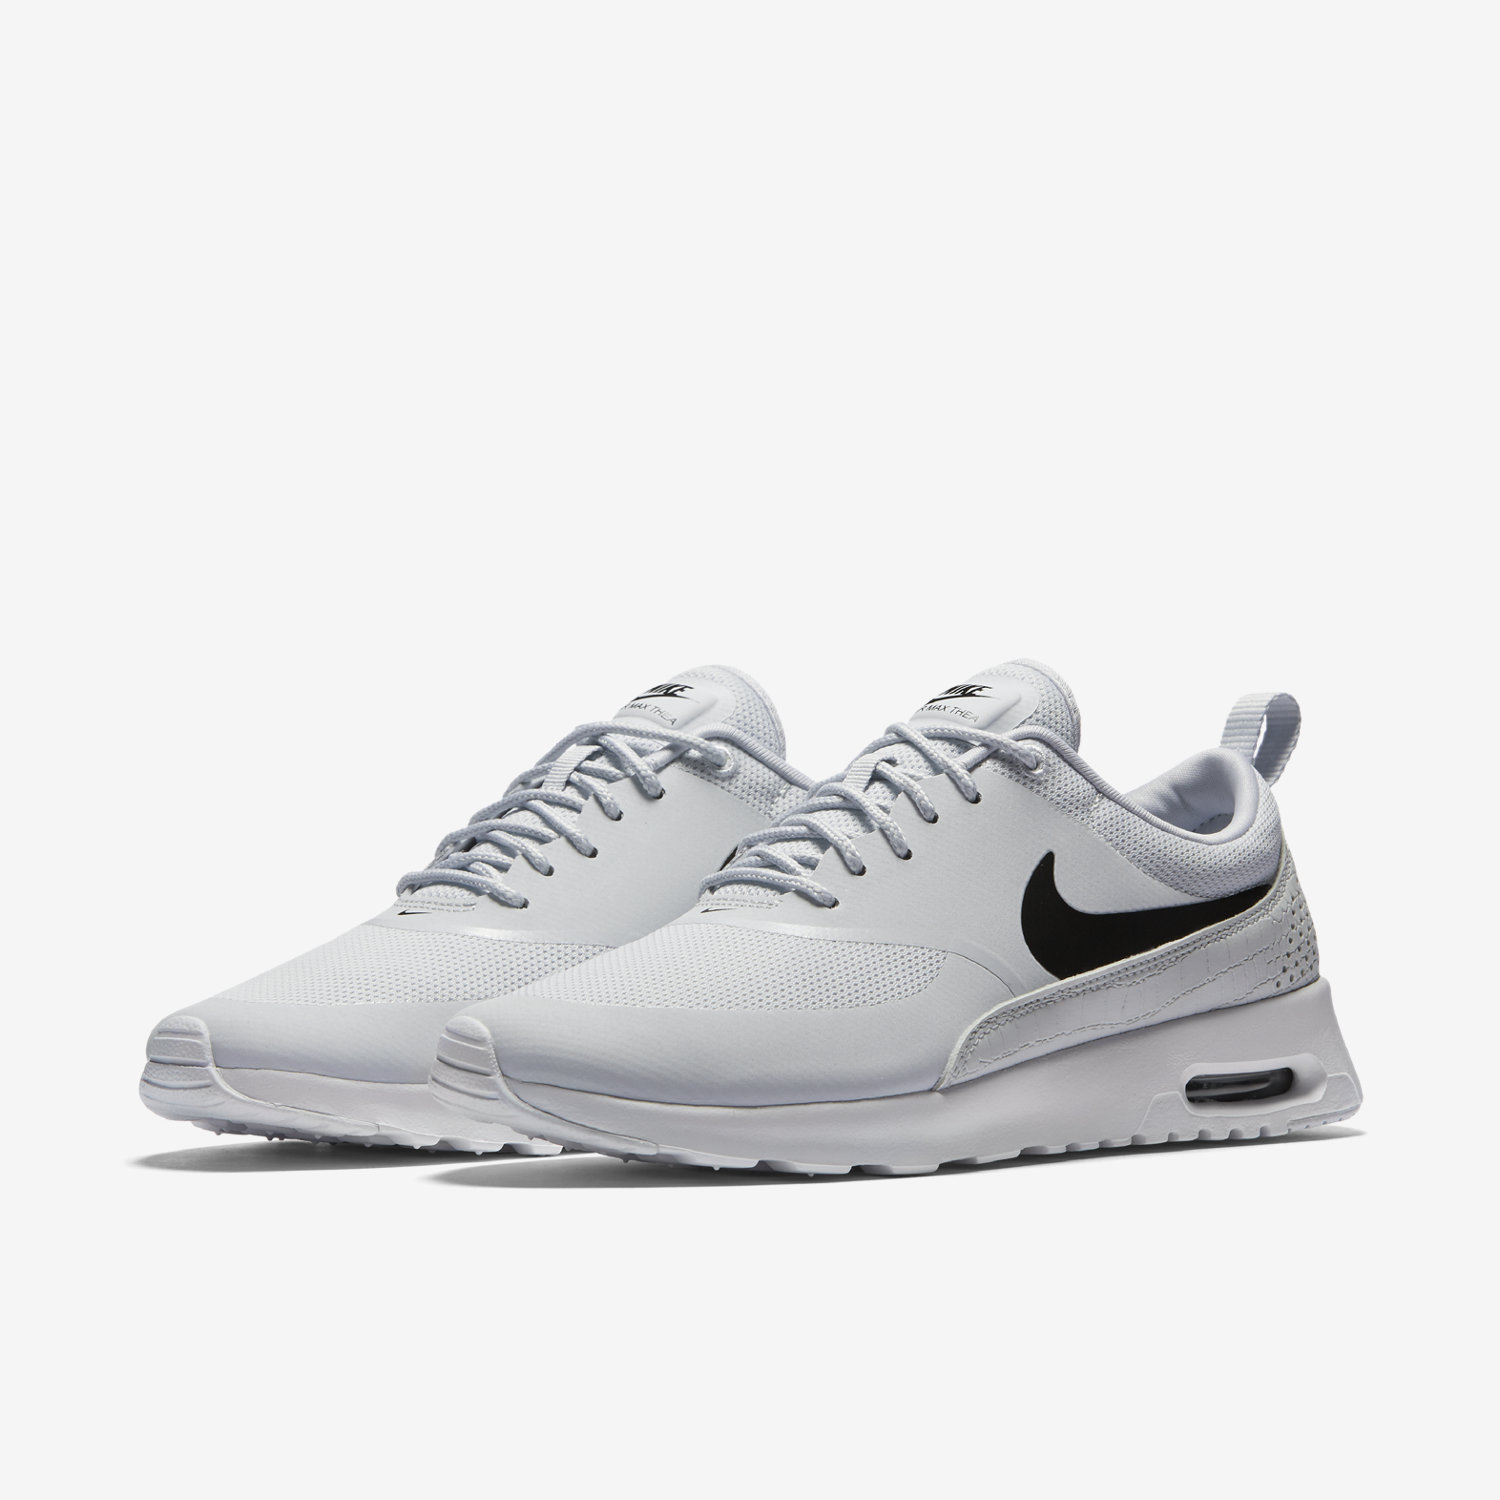 Shoes Nike Air Max Thea Print (599408 102) Running